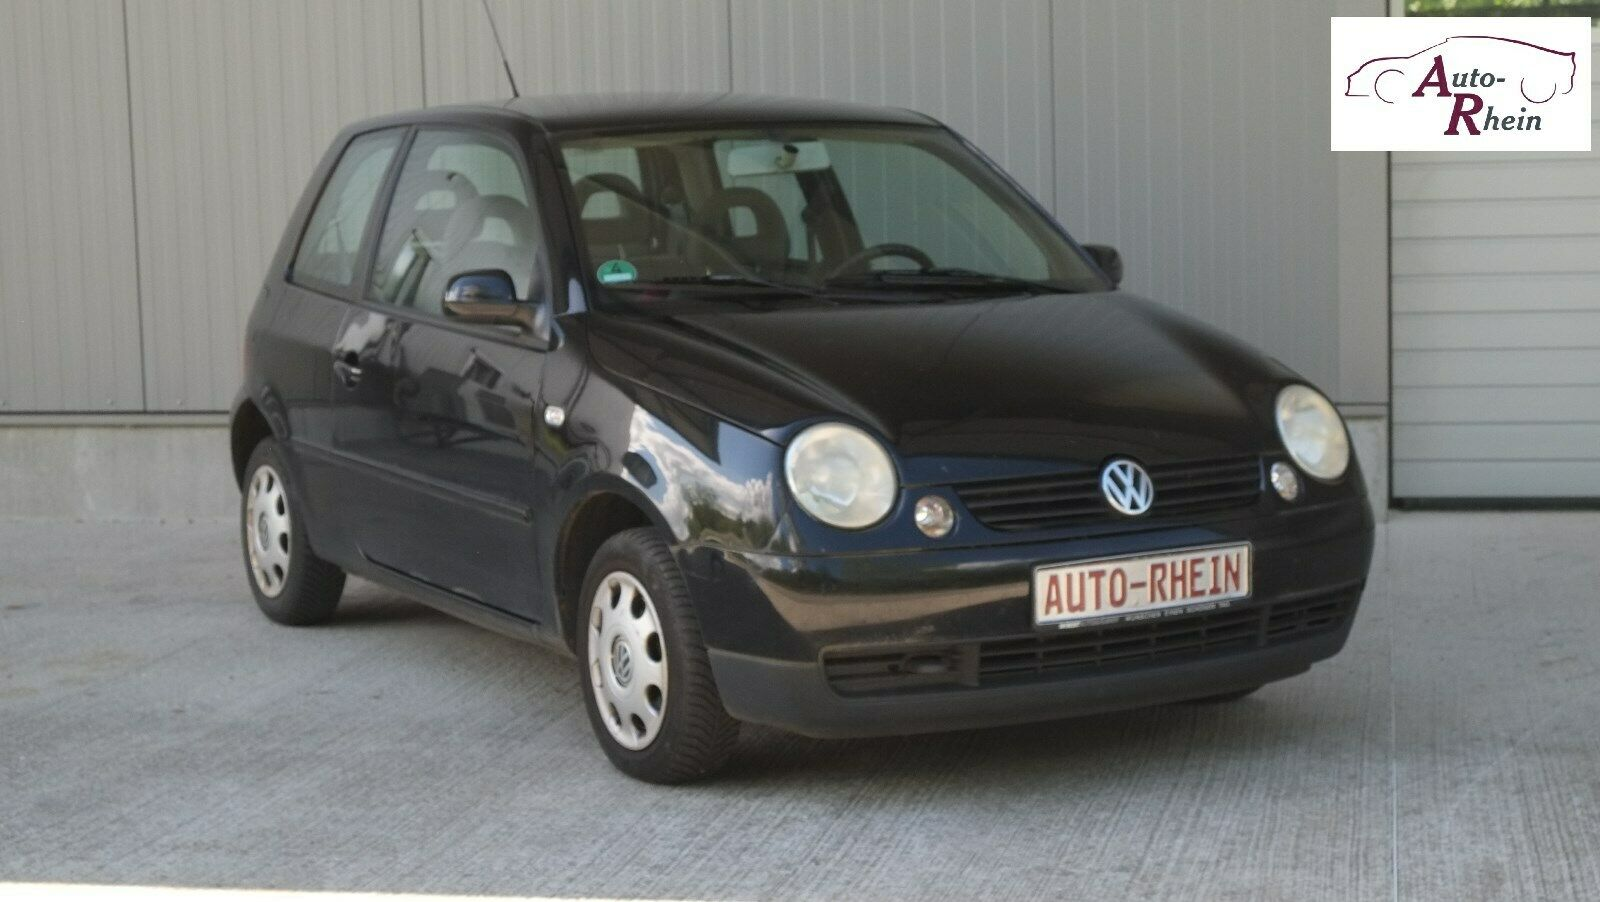 VW Lupo 1.0 College